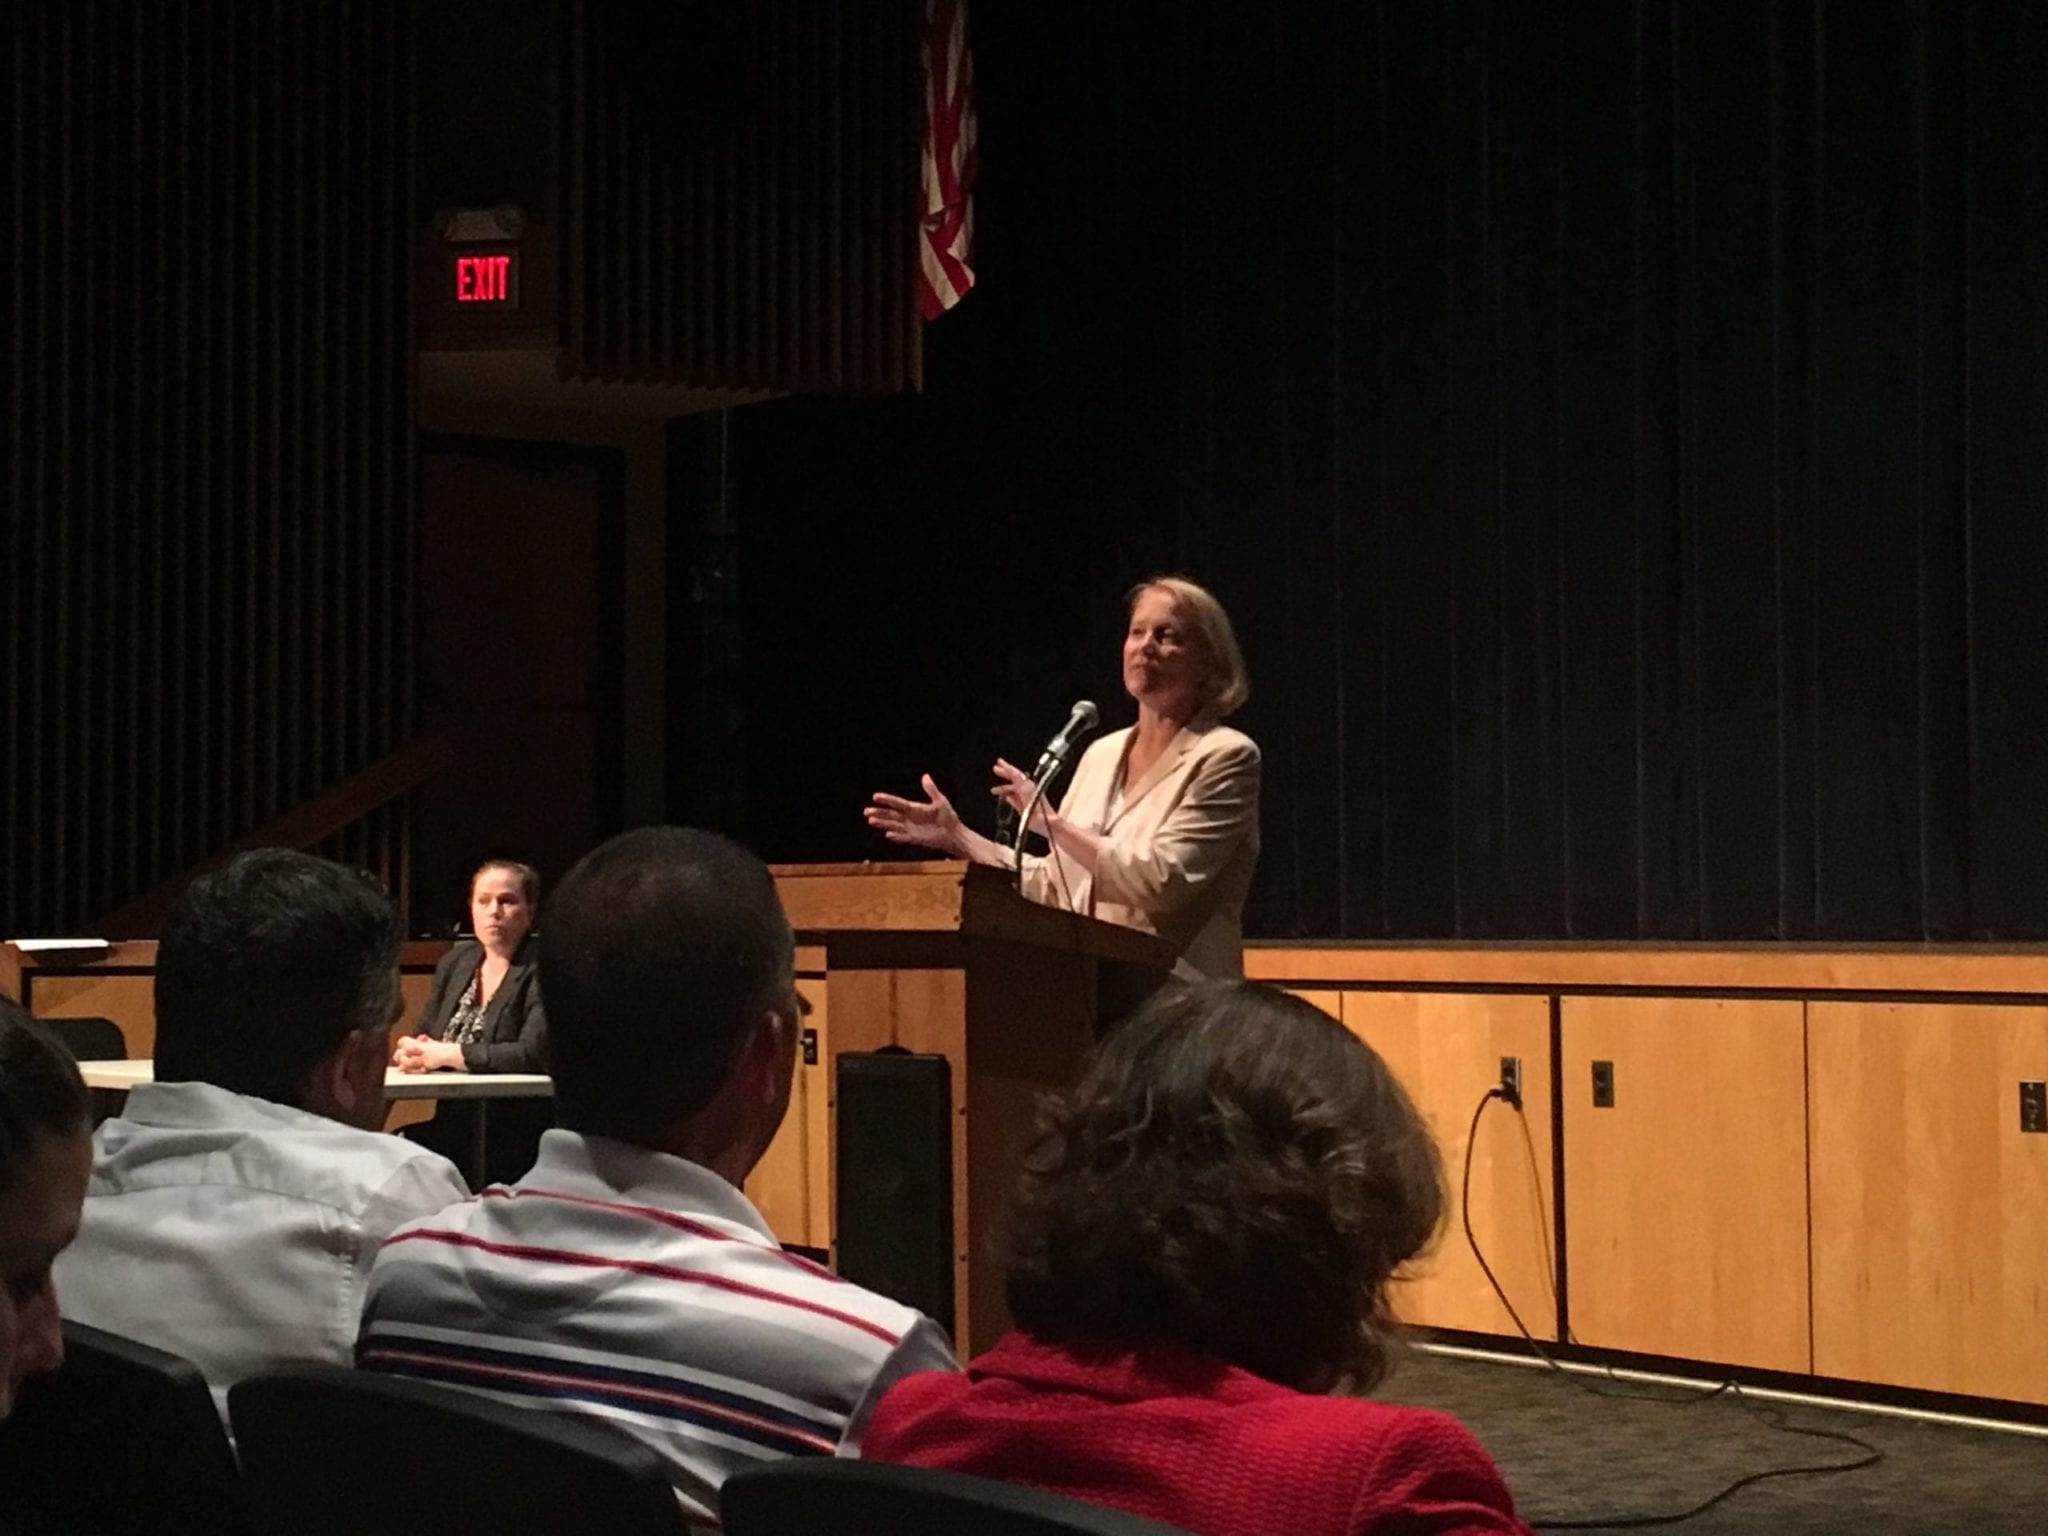 Onondaga County Shared Services plan brought to public hearing